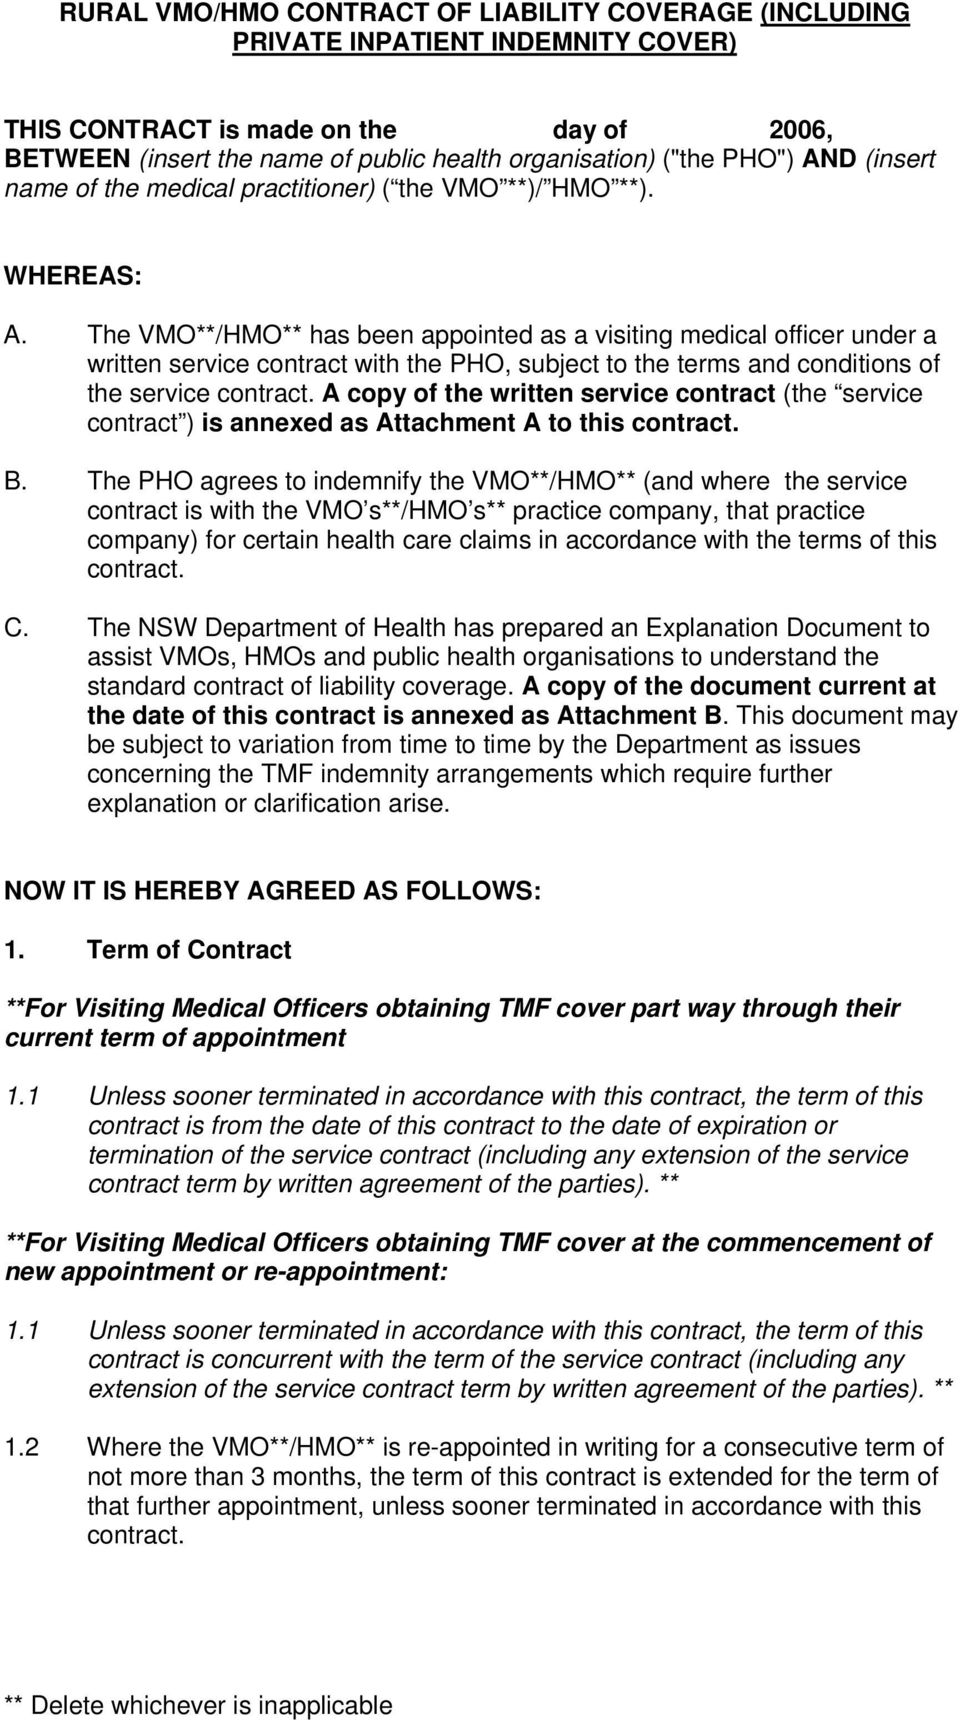 The VMO**/HMO** has been appointed as a visiting medical officer under a written service contract with the PHO, subject to the terms and conditions of the service contract.